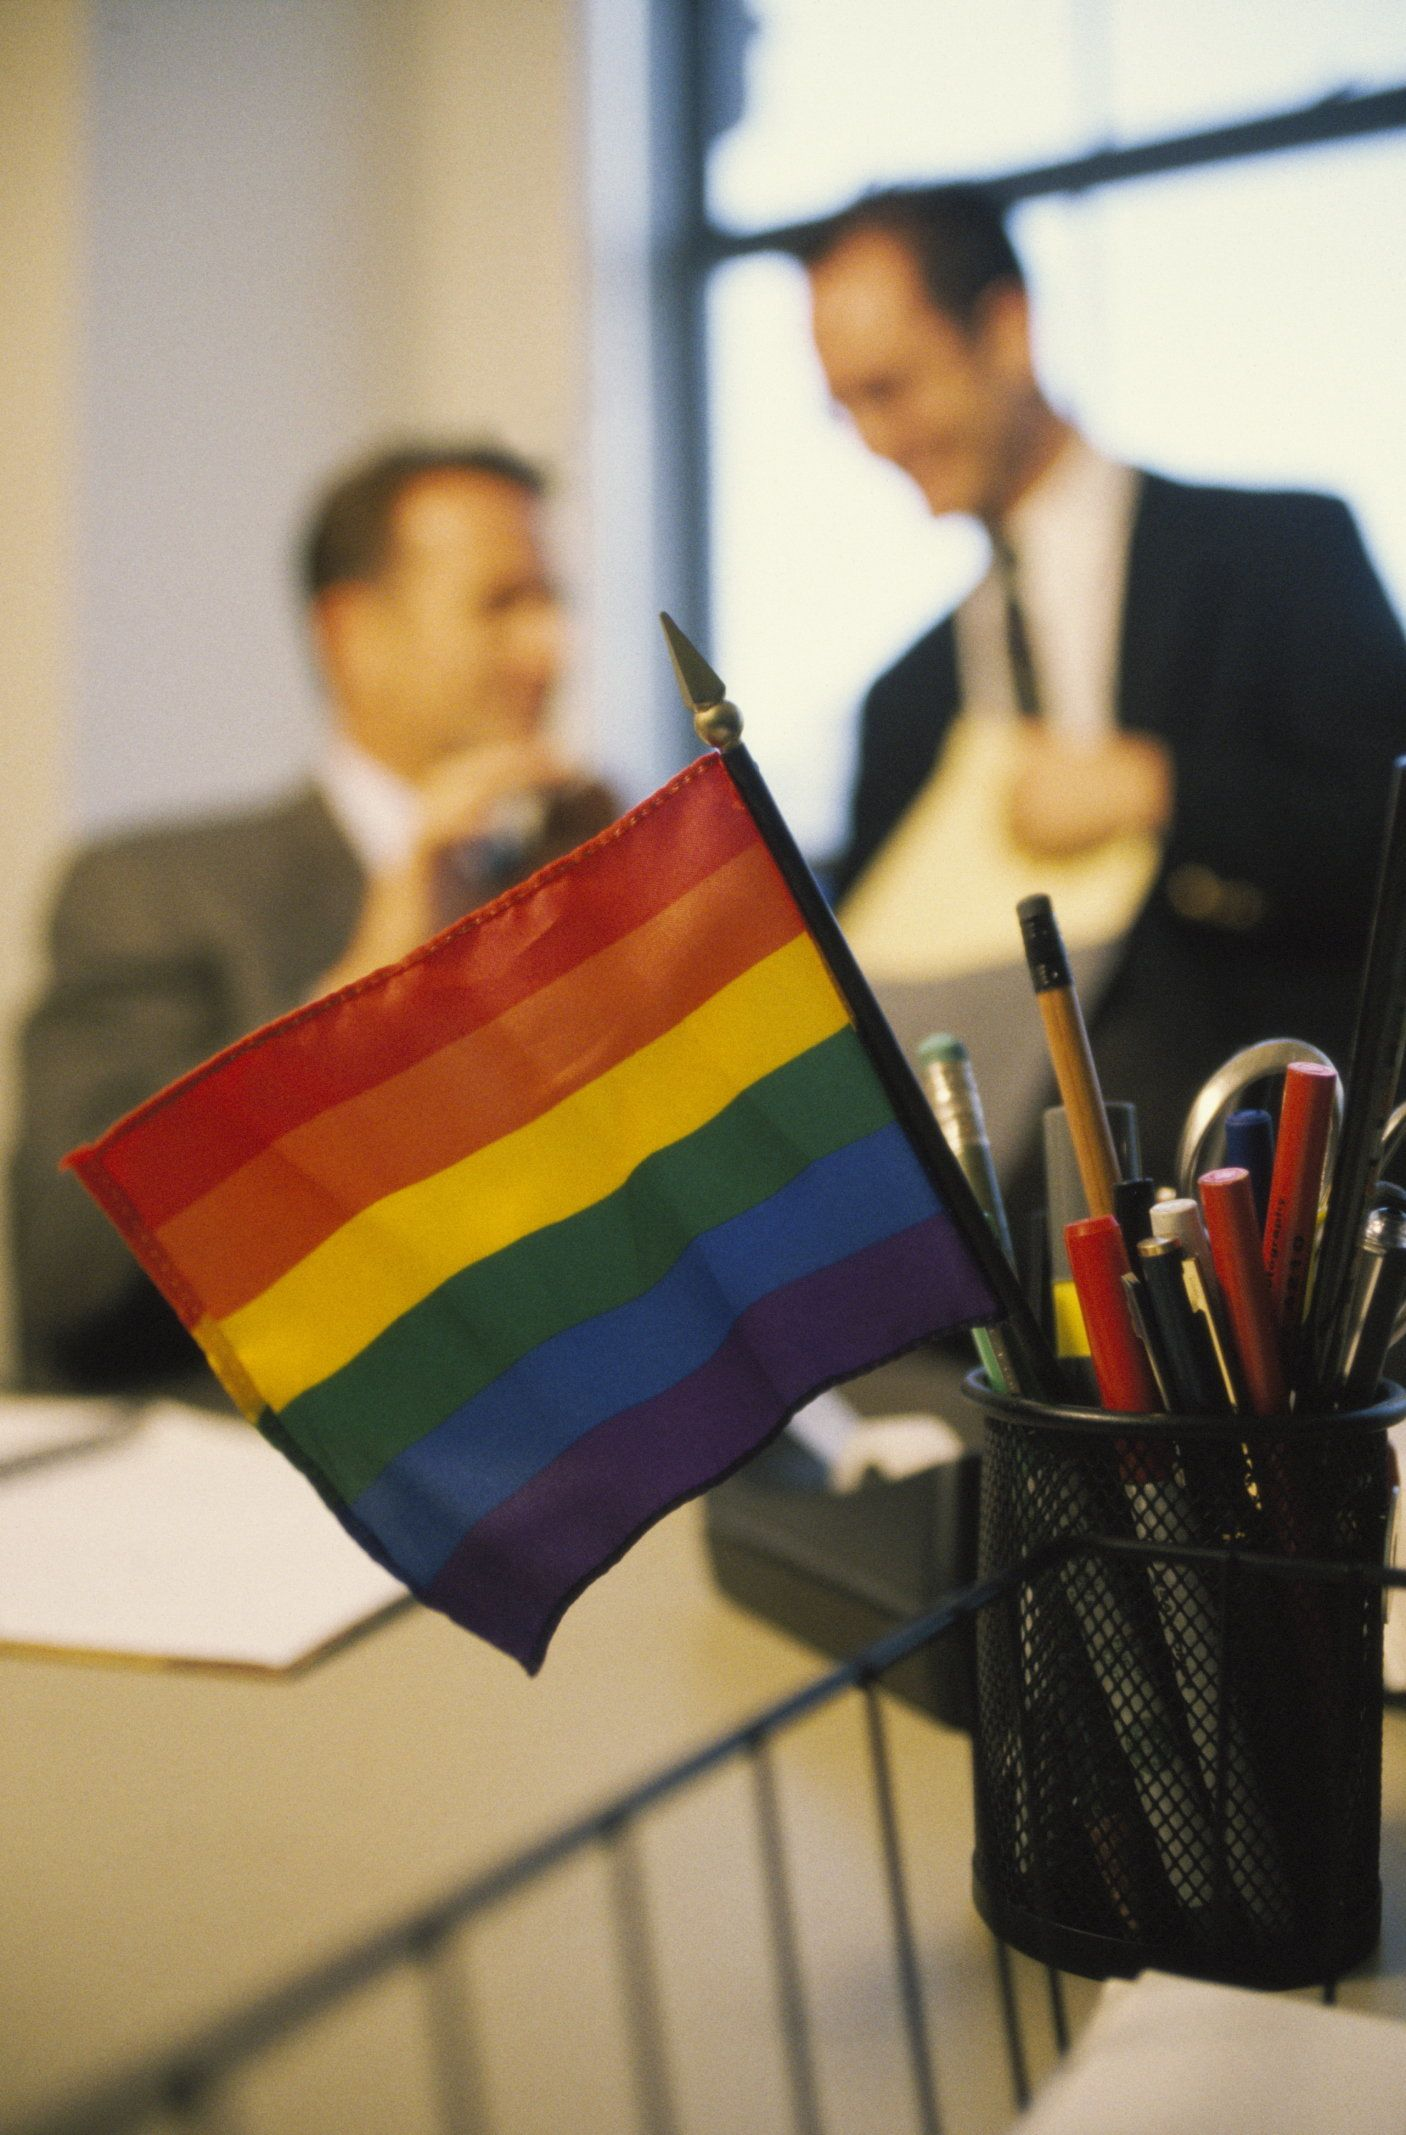 Rainbow flag in pencil holder on office desk